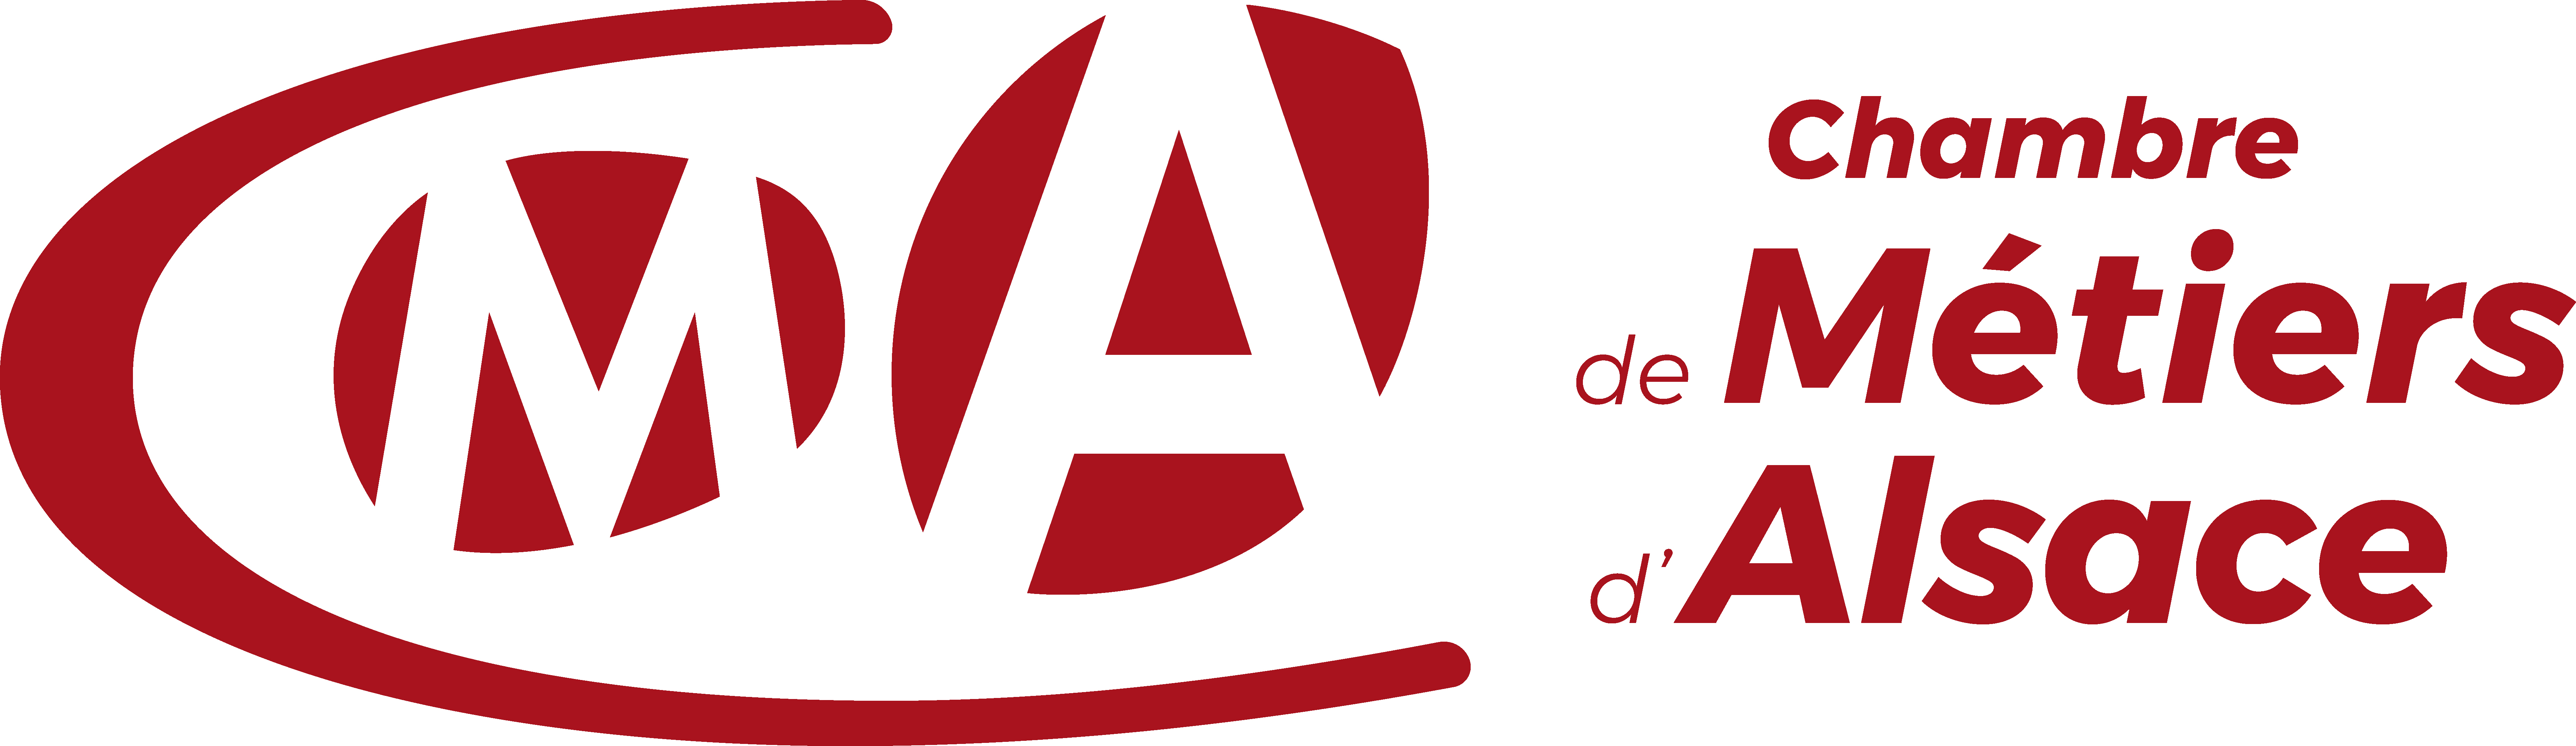 Action industrie collaborative aic campus industrie - Chambre des metiers mulhouse ...